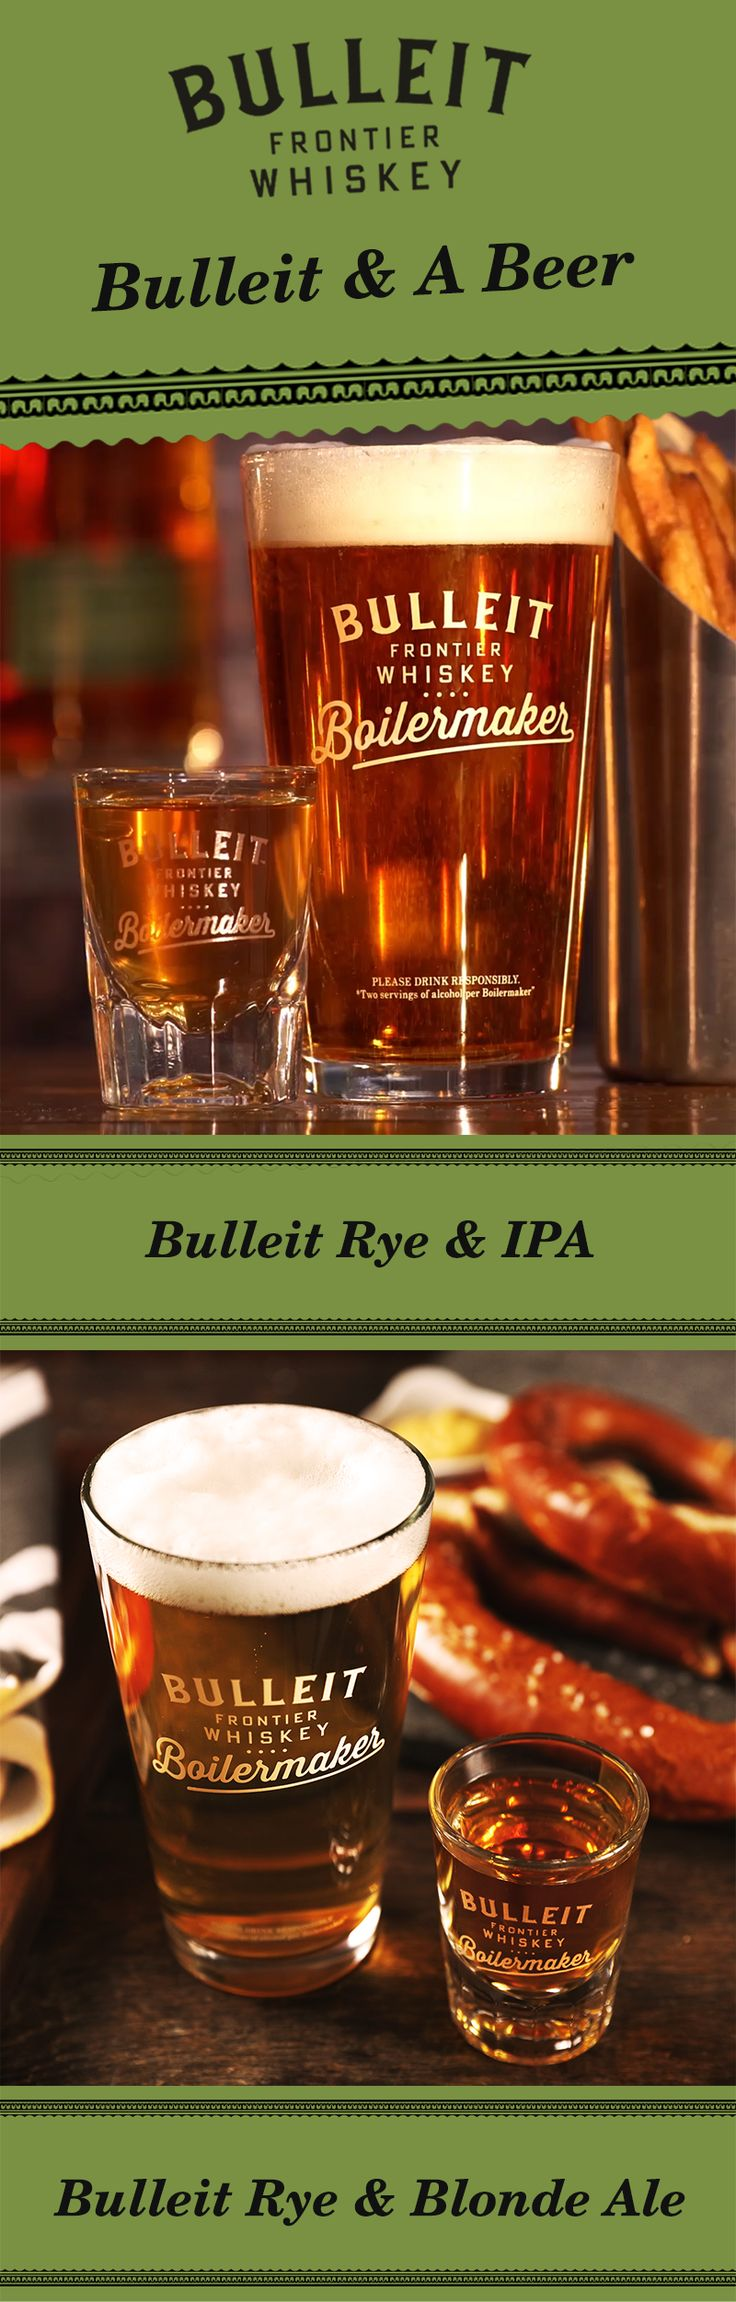 It's playoff season, so open up the tailgating playbook. Whether you're at home, the bar, or a football viewing party—go for Bulleit and a beer. The recipe is easy, just pair a beer and a shot. Simply pour 1.3 oz Bulleit Rye and pair it with your favorite 12 oz beer—including an IPA or blonde ale. To best experience this two-drink serve, alternate between sipping Bulleit Rye and slowly drinking your beer to discover unique flavor profiles.